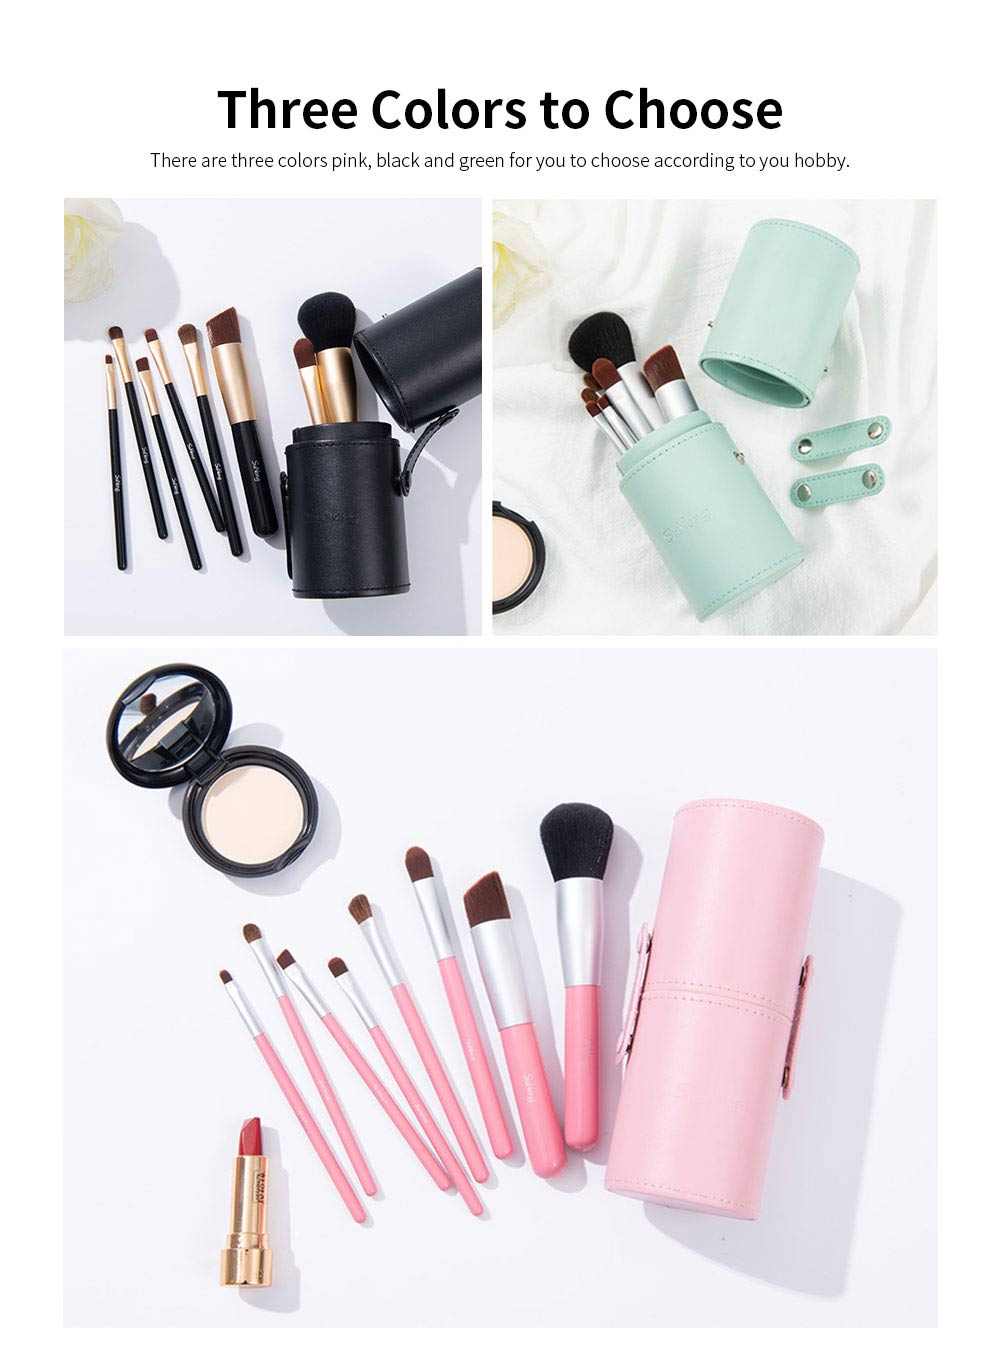 8 pcs Makeup Brushes Set with Holder, Soft Cosmetic Brush Tool for Makeup with Storage Case 3